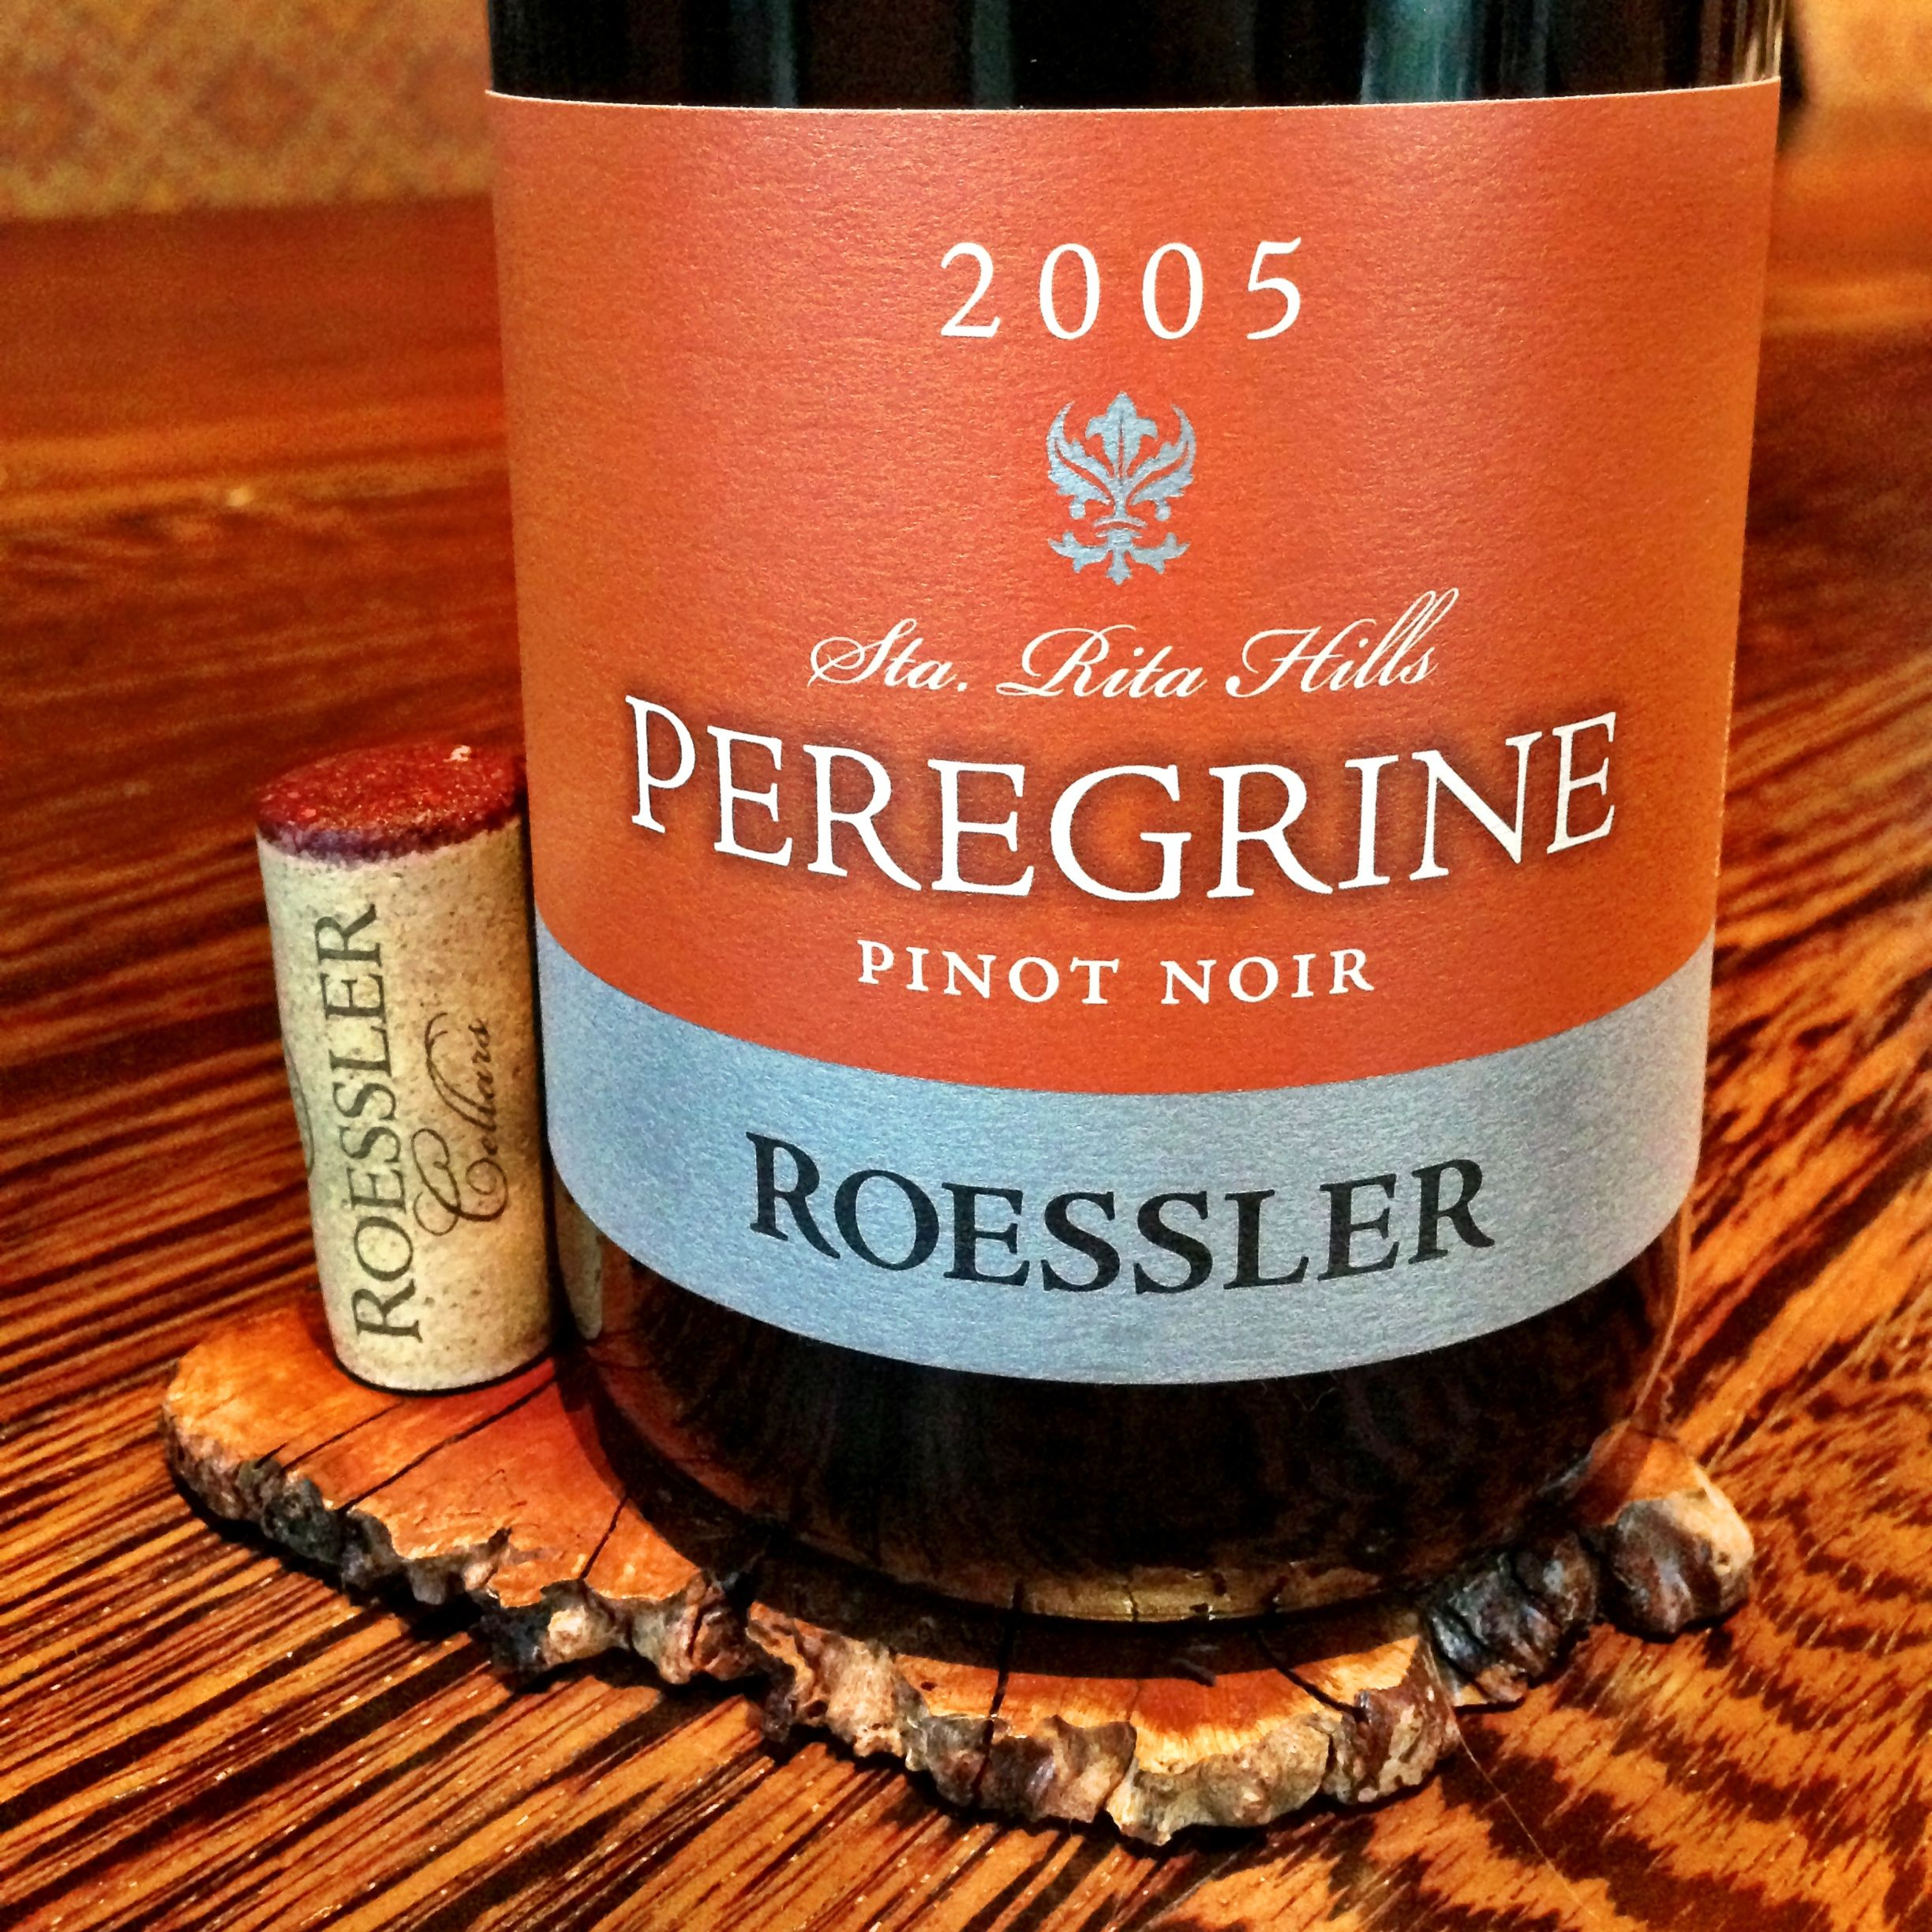 2005 Roessler Peregrine Pinot Noir Santa Rita Hills Light Yet Vibrant Red Violet Color Muted Nose Of High Toned Red Fruit With Pinot Wine Bottle Pinot Noir